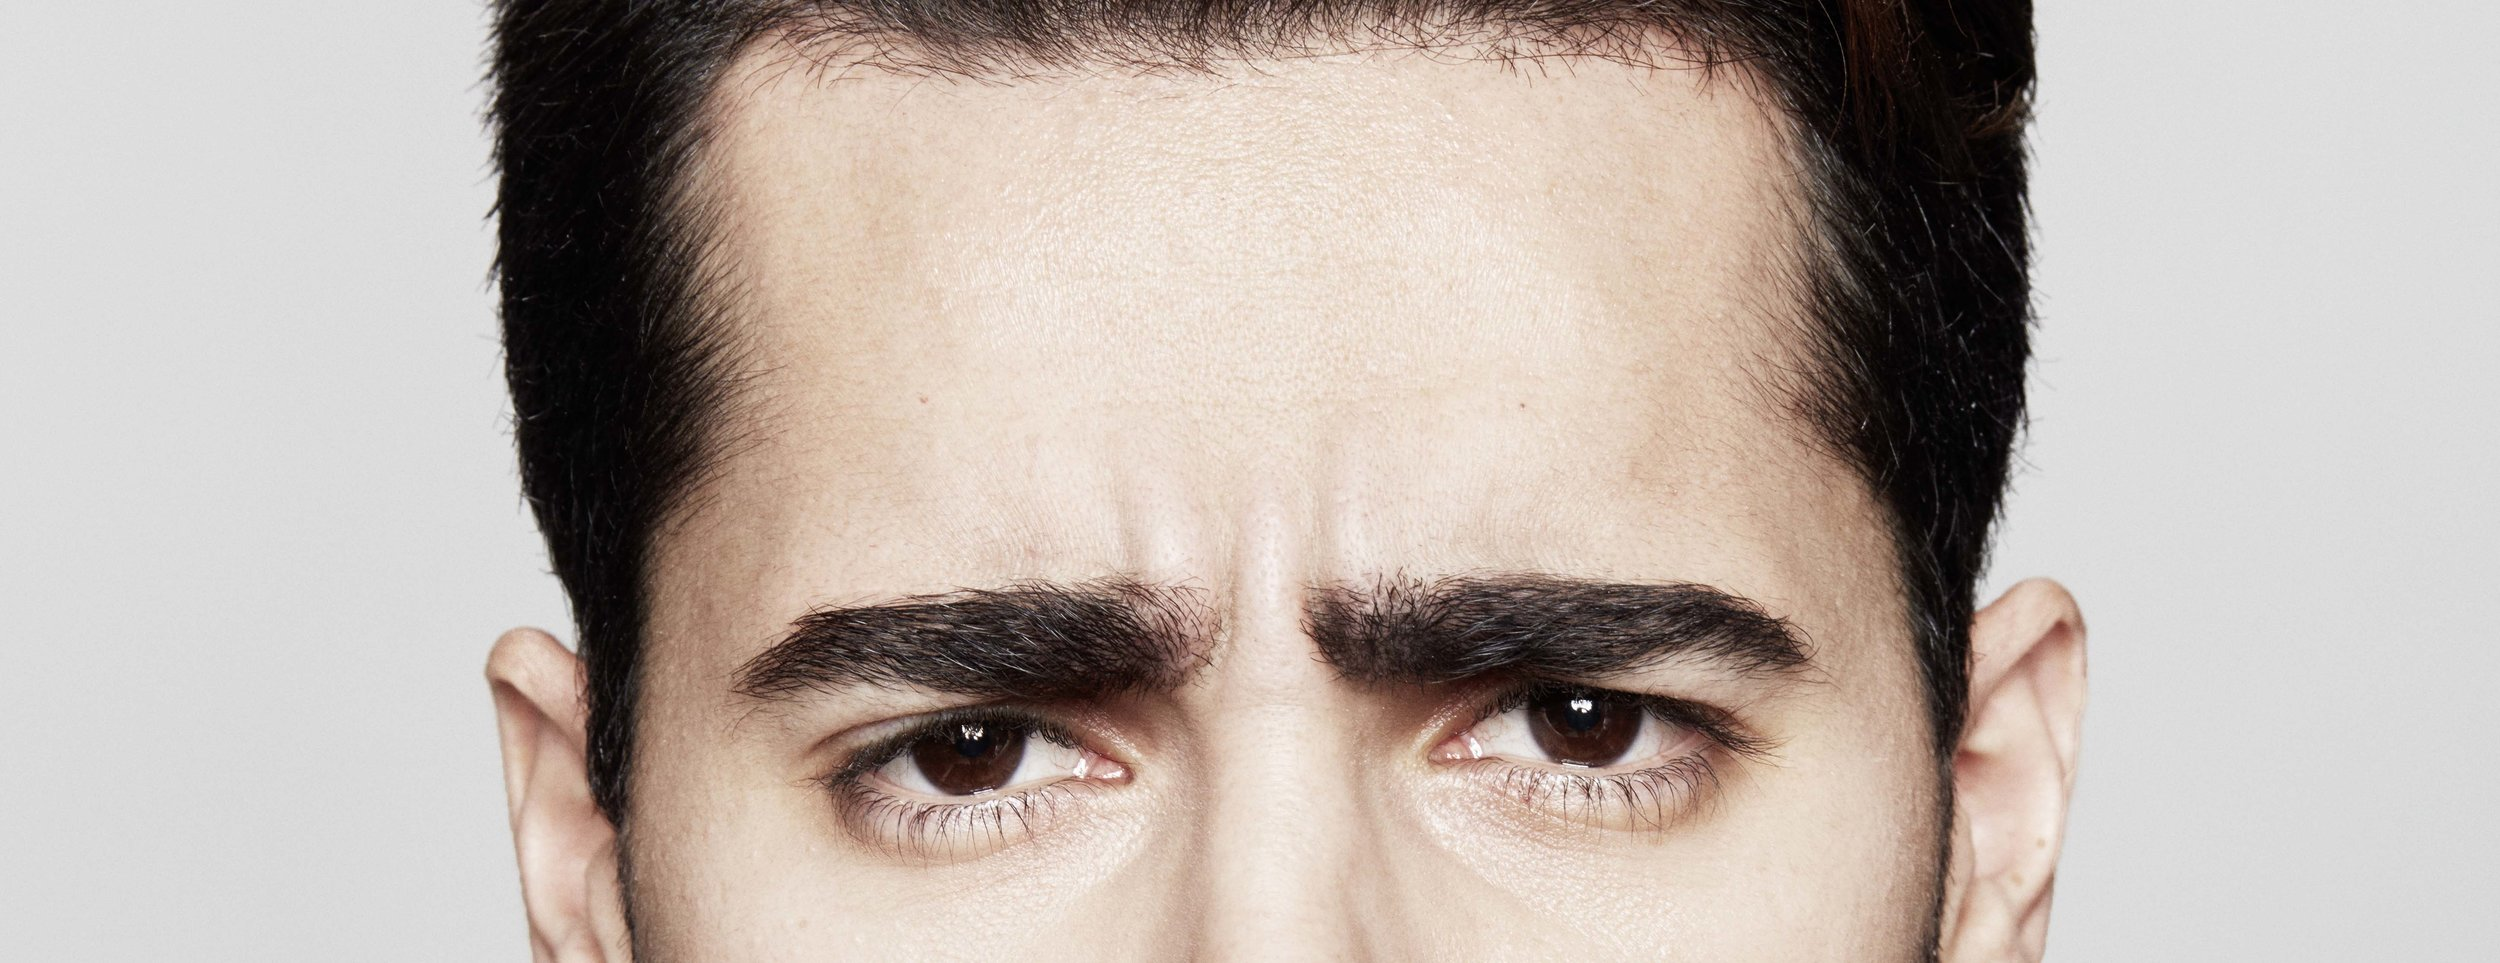 Mo Front Frowning Cropped.jpg